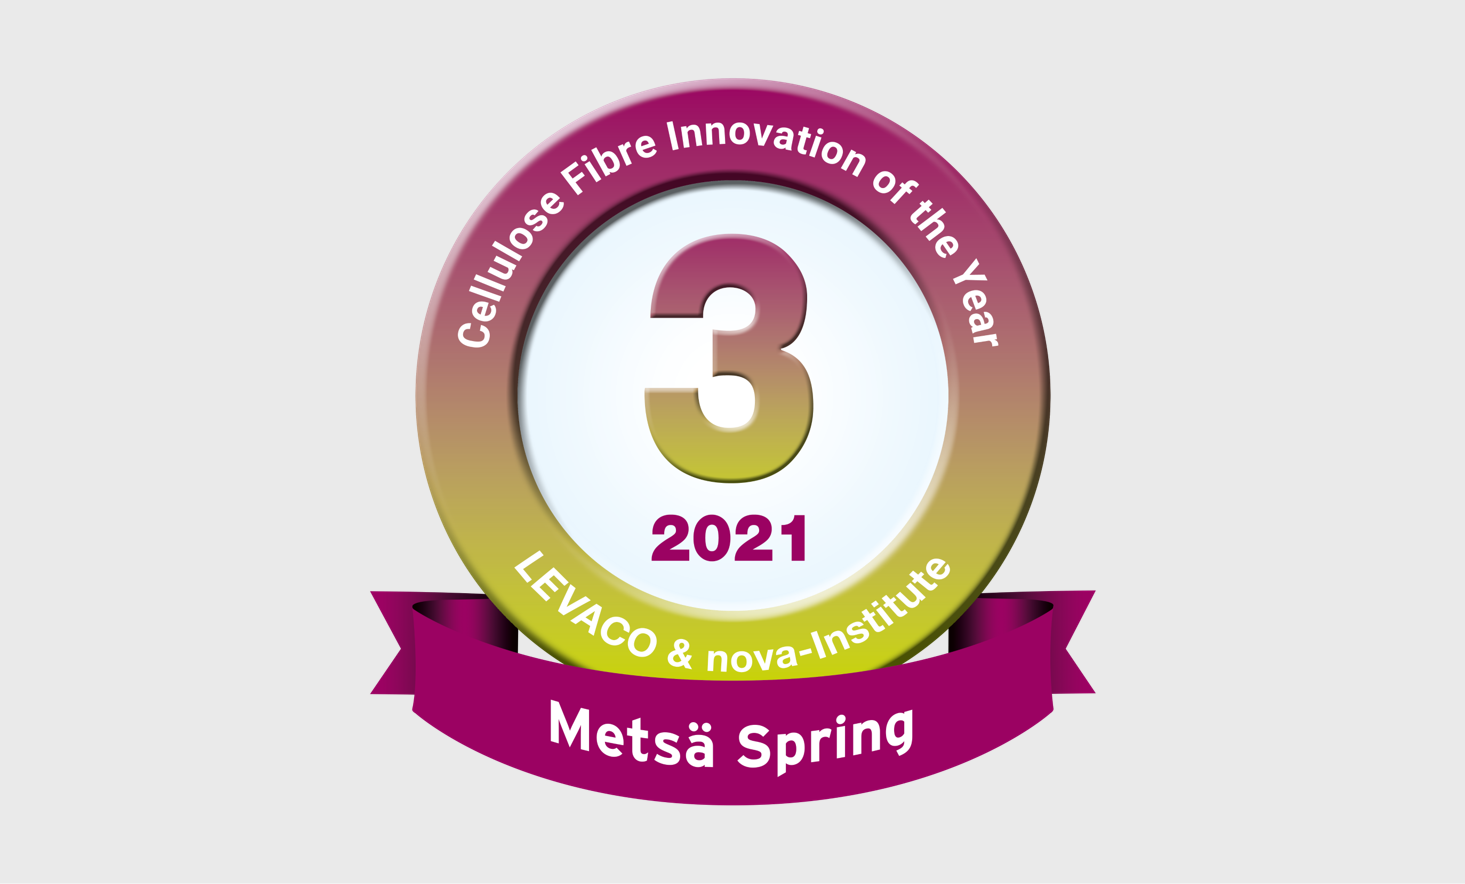 Metsä Spring wins third place in international Cellulose Fibre Innovation of the Year 2021 award